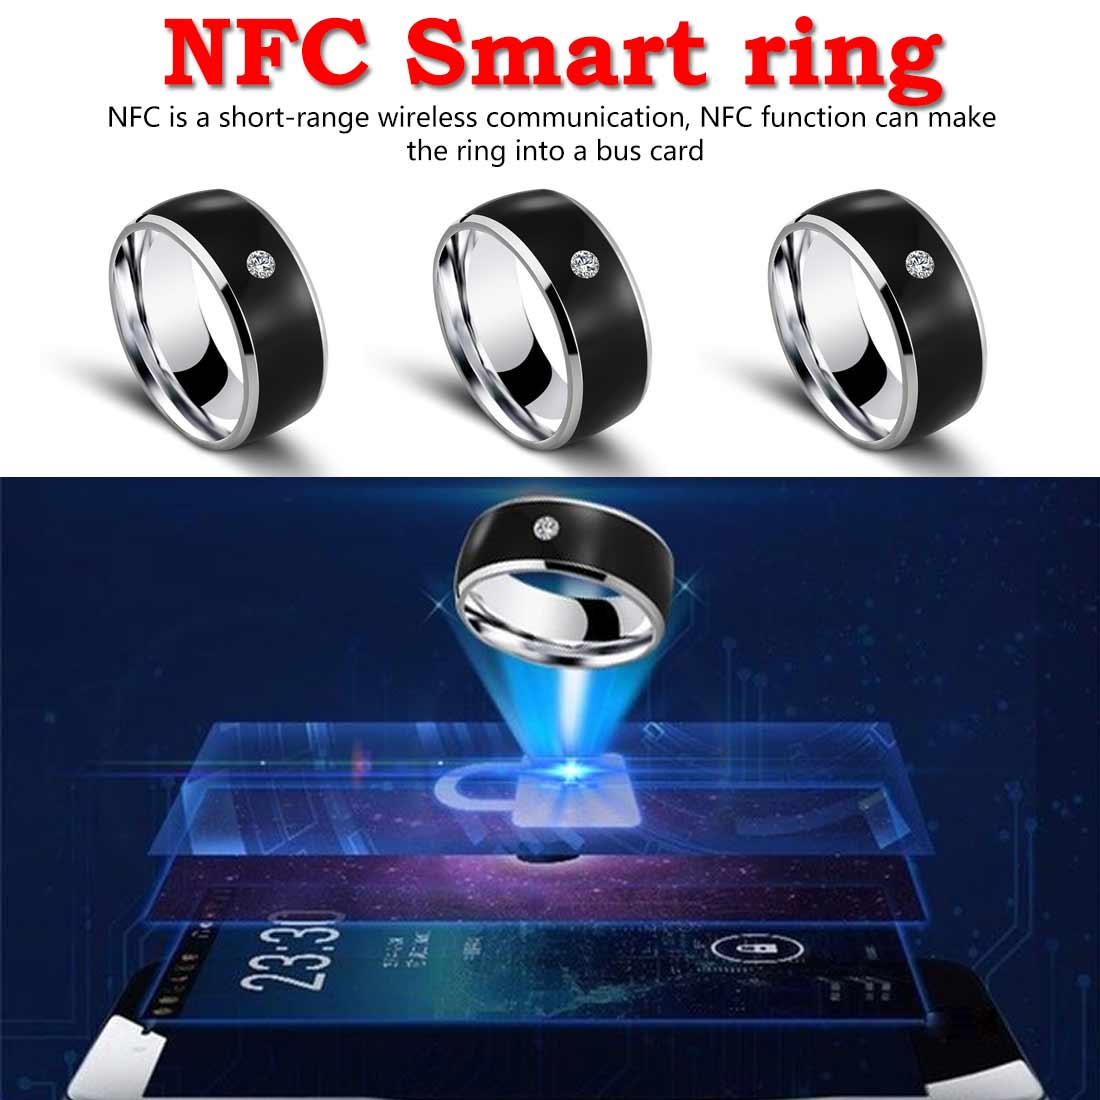 R3F <font><b>Smart</b></font> Ring Tragen Magie Finger NFC Ring IC ID Karte für Android <font><b>Windows</b></font> NFC Handy Wasserdicht <font><b>Smart</b></font> Ring image